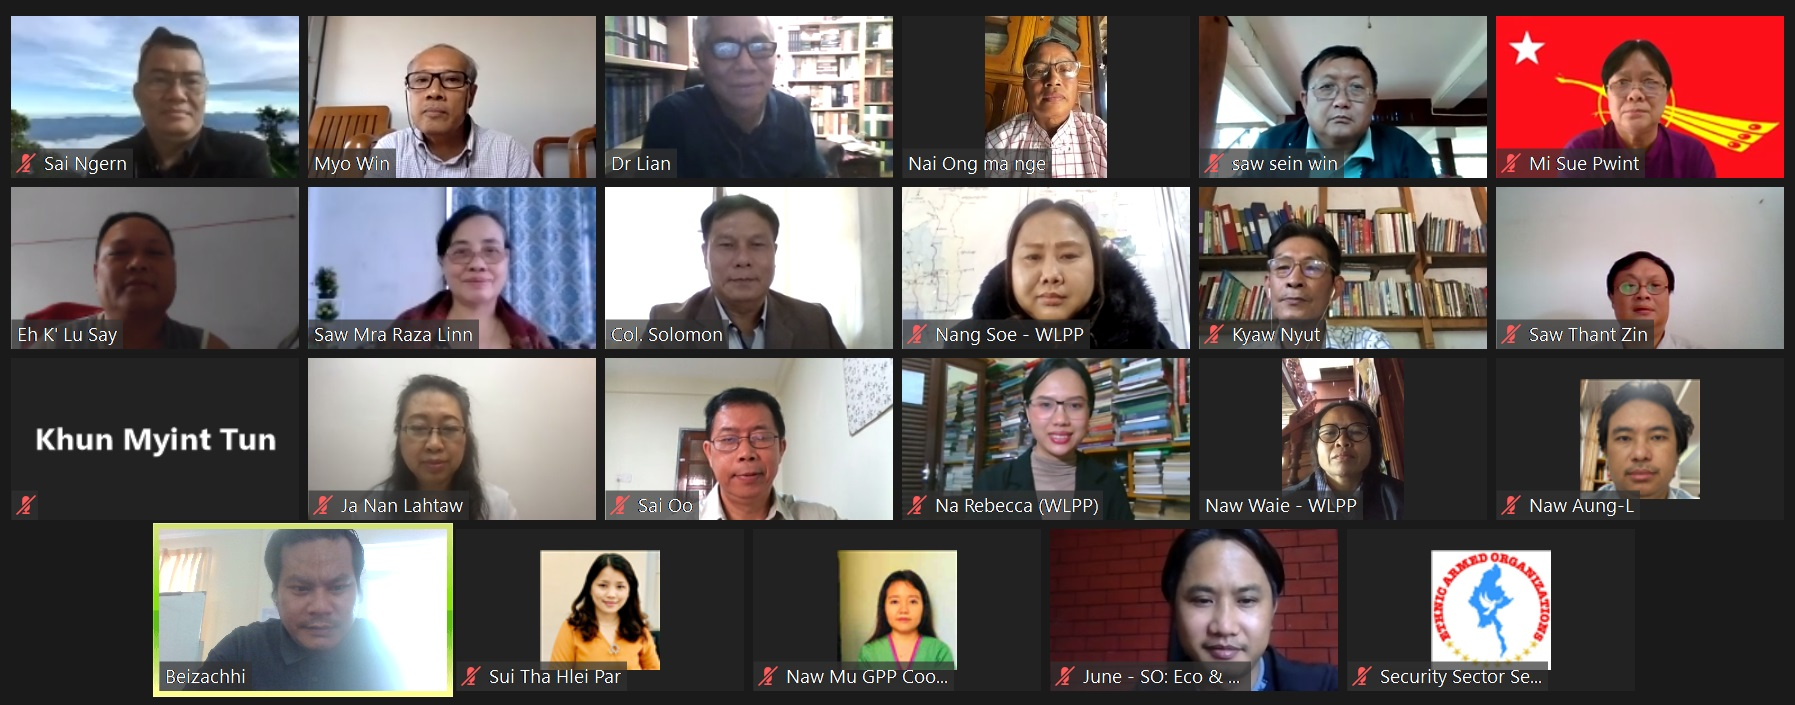 36th NCA-S EAO UPDJC meeting held through online video conference today